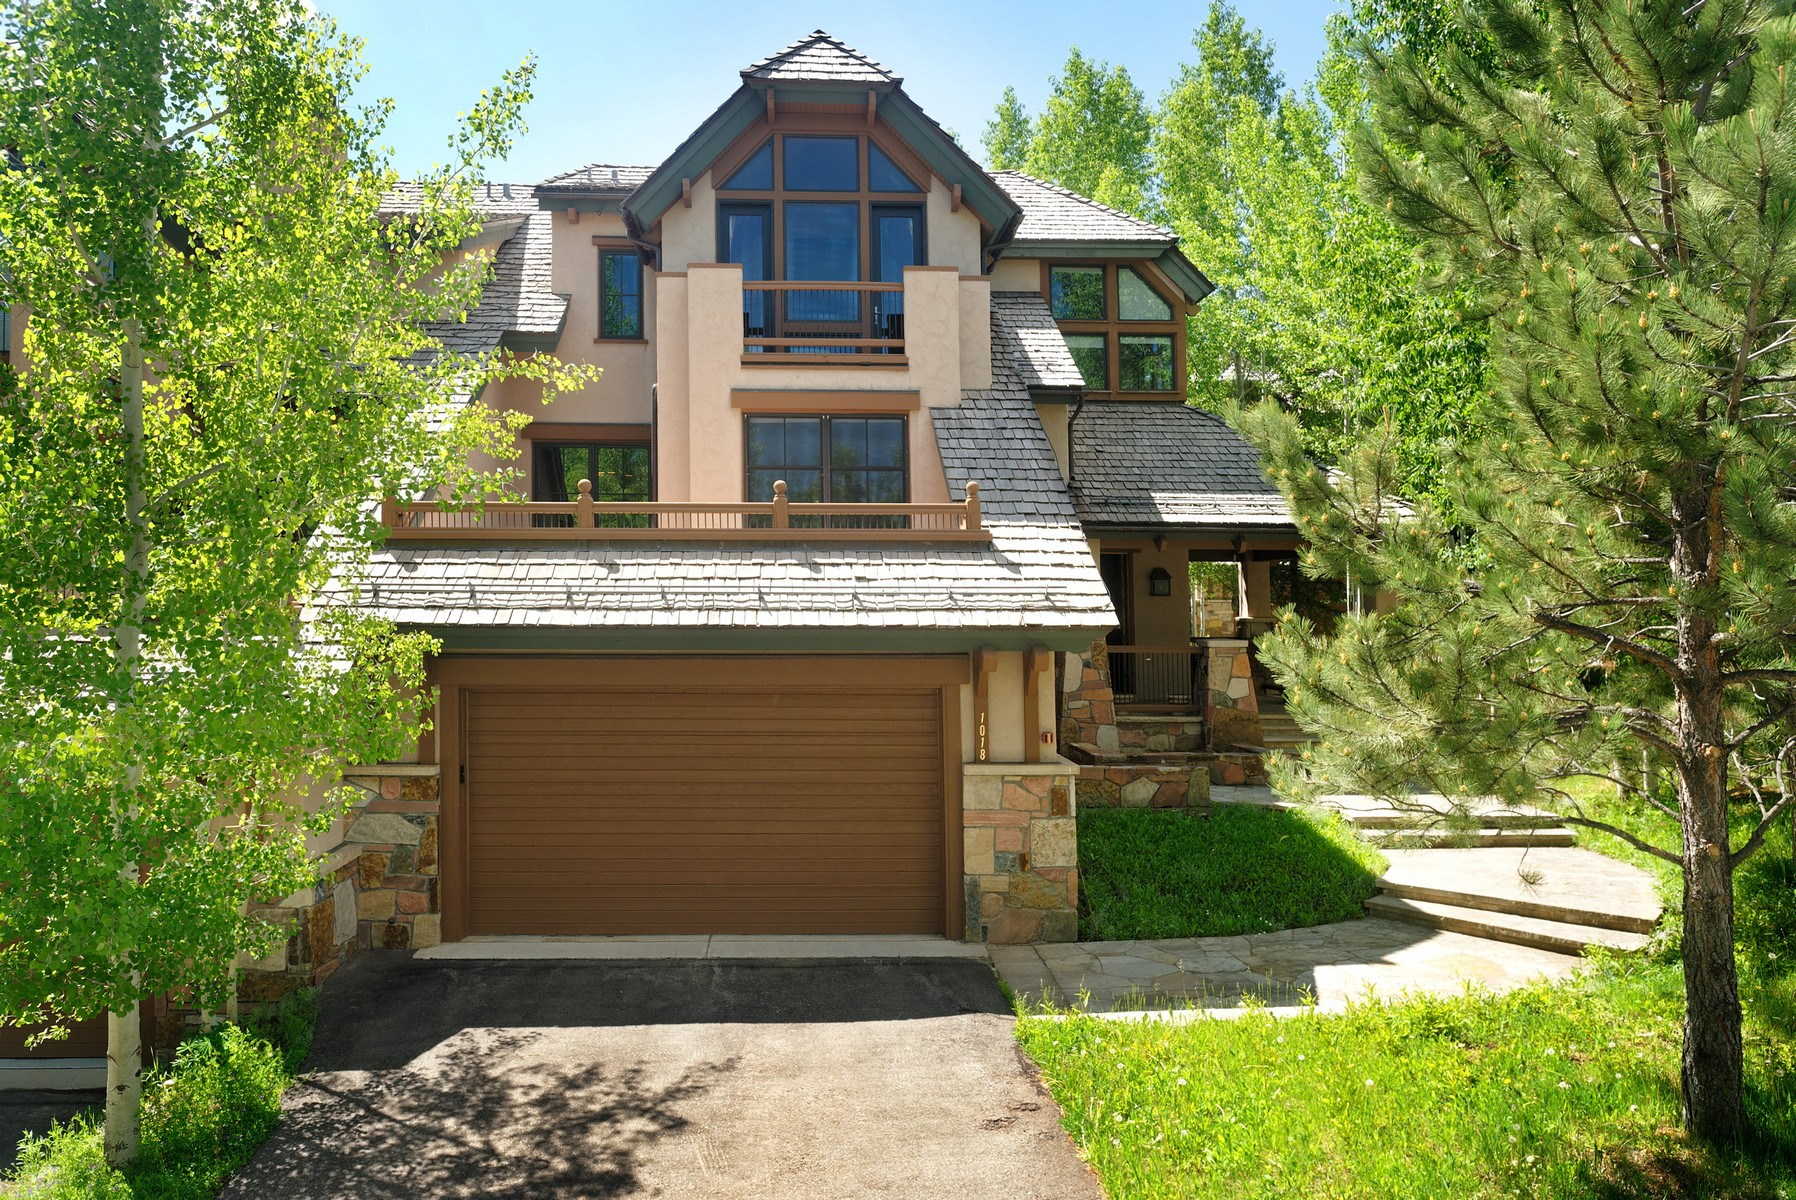 Casa Unifamiliar Adosada por un Venta en 1018 Burnt Mountain Drive Snowmass Village, Colorado, 81615 Estados Unidos